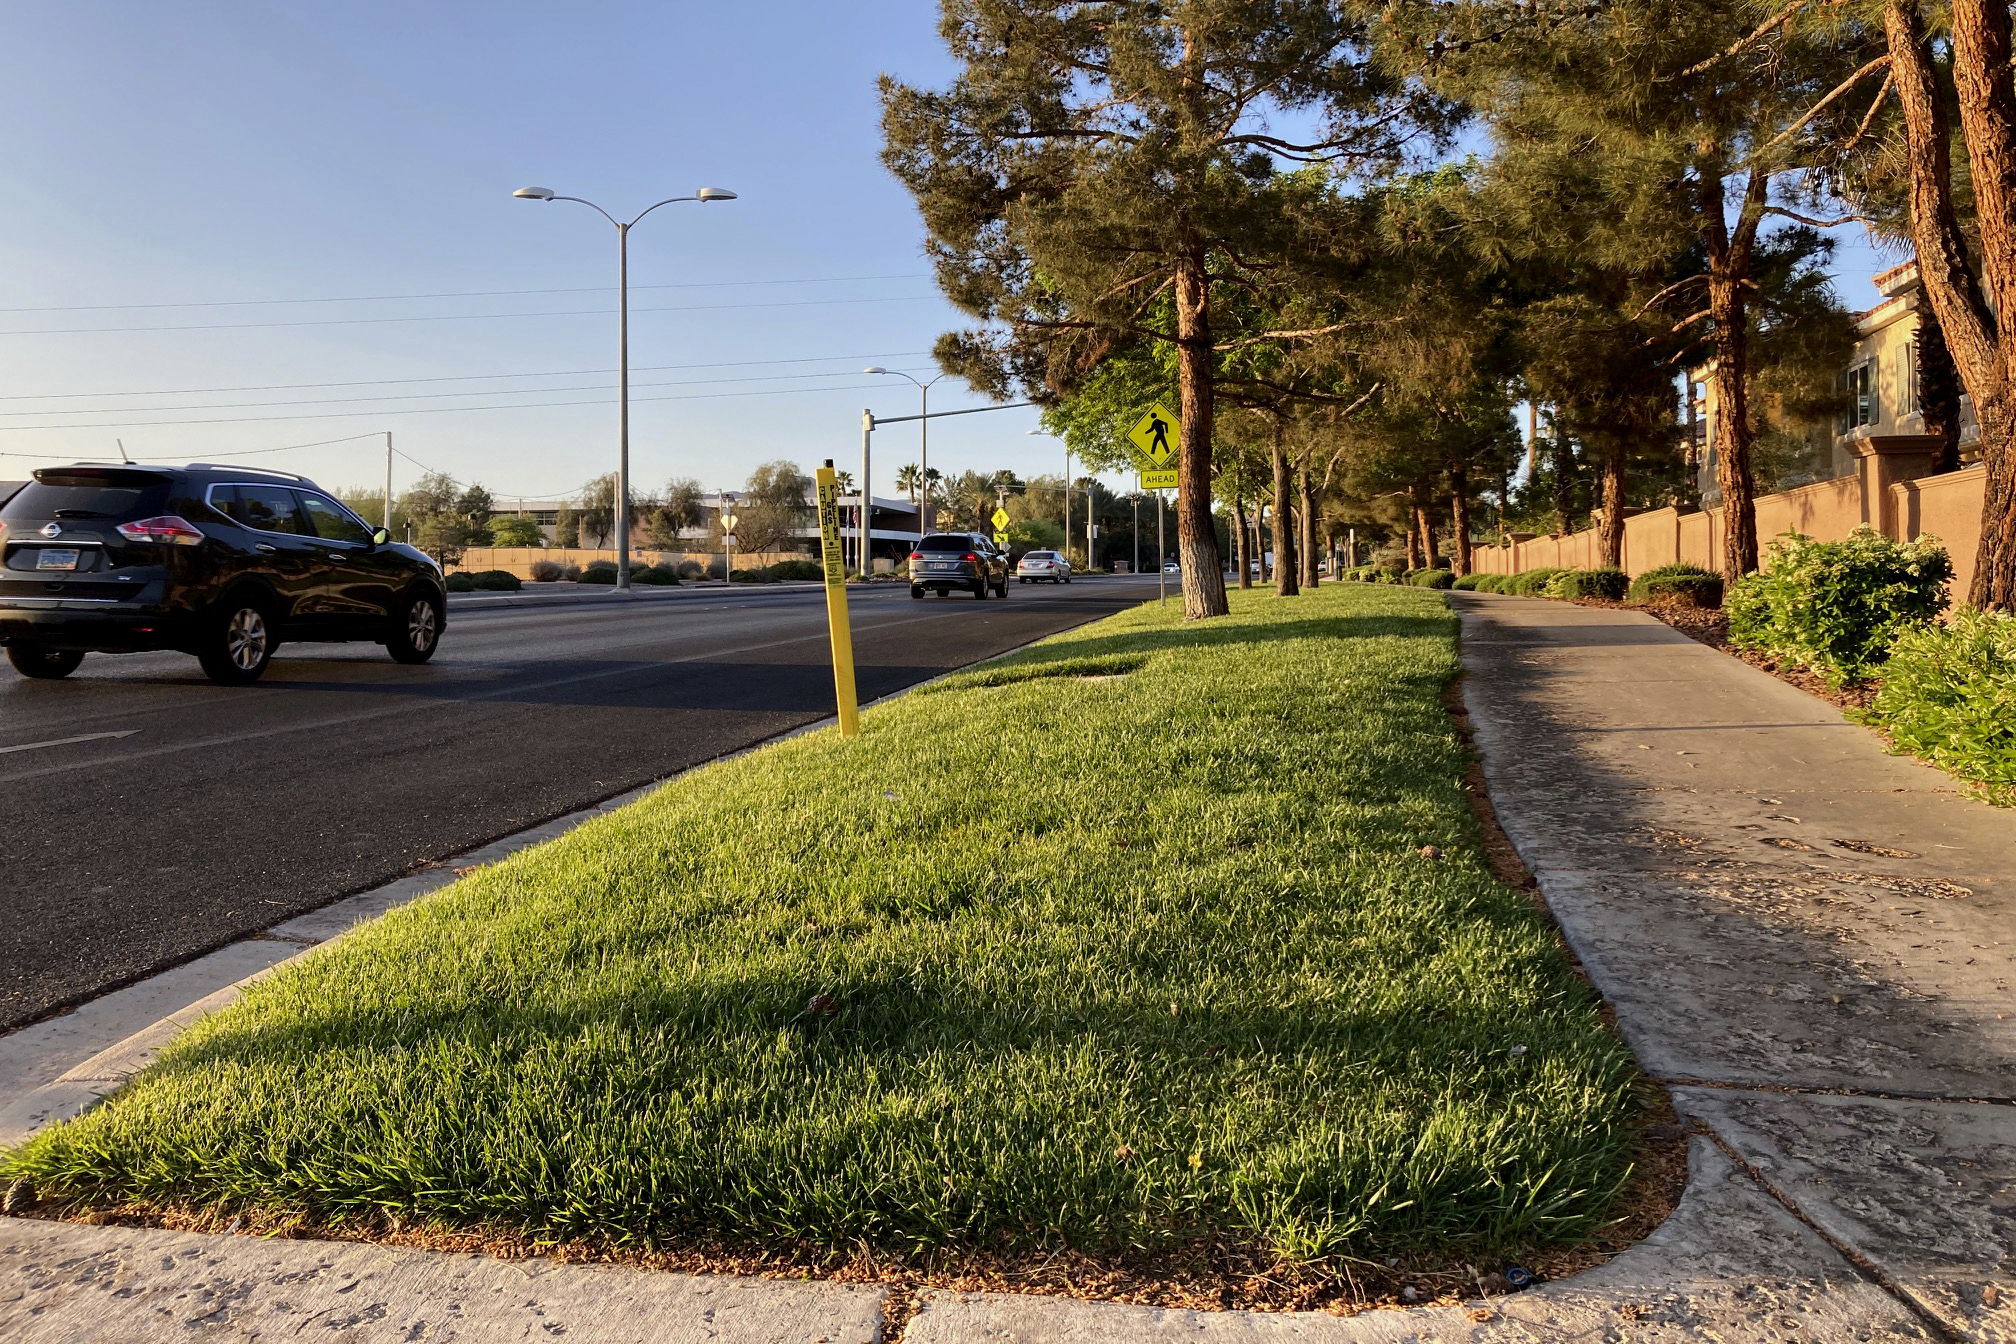 In this April 9, 2021, file photo, traffic passes a grassy landscape on Green Valley Parkway in suburban Henderson, Nev. Nevada Governor Steve Sisolak signed legislation on Friday, June 4 to make the state the first in the nation to ban certain kinds of grass. The measure will ban water users in southern Nevada from planting decorative grass in an effort to conserve water. (AP Photo/Ken Ritter, File)